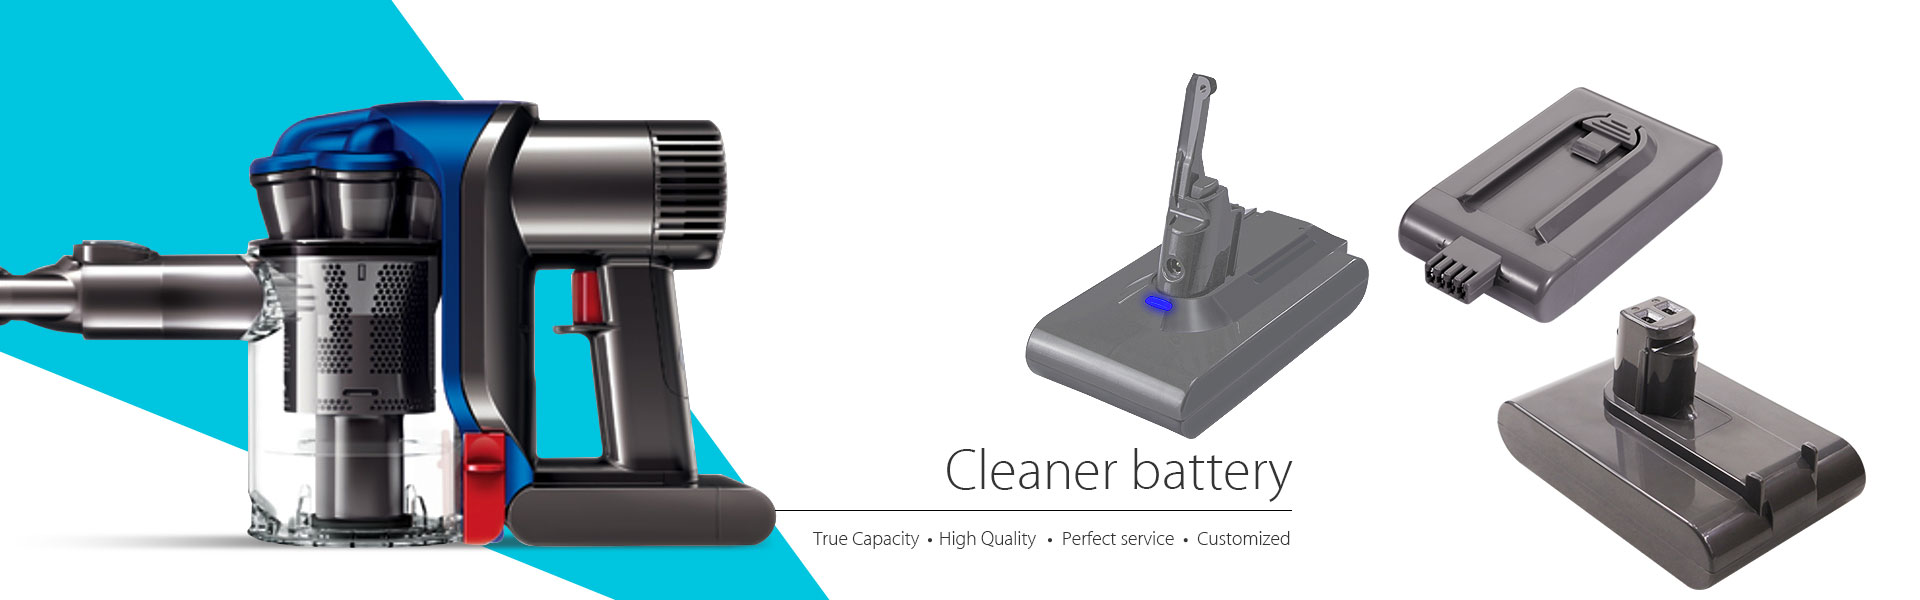 Cleaner battery